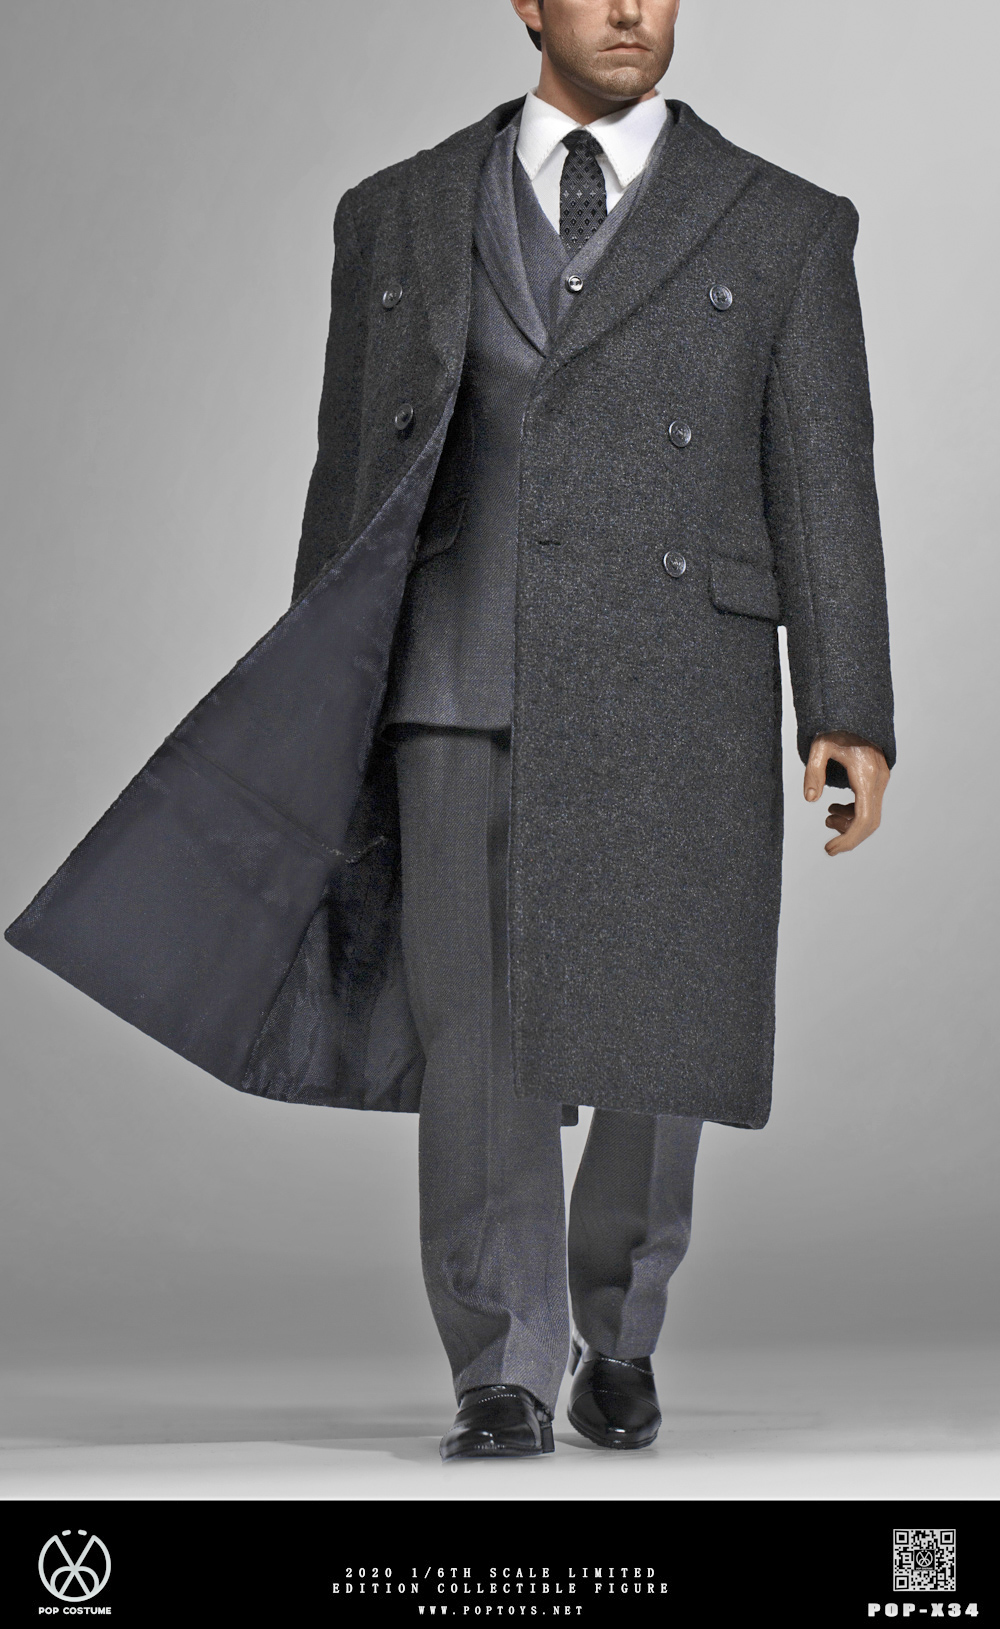 Dress Suit and Overcoat Set<BR>PRE-ORDER: ETA Q1 2021